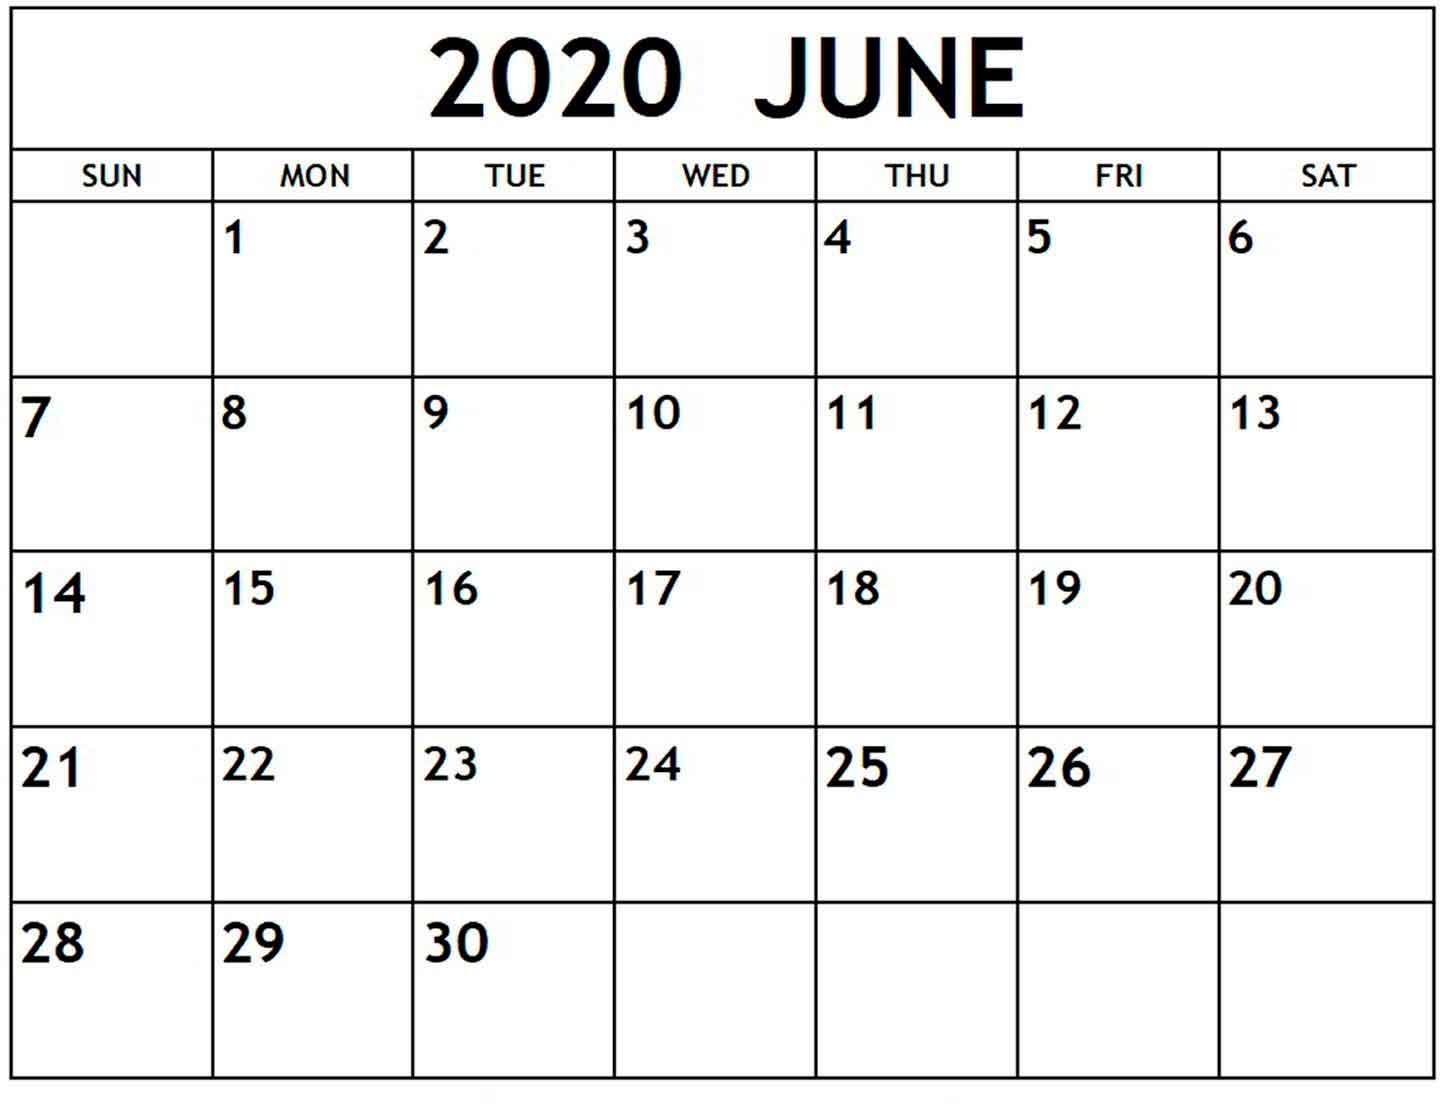 Monthly Calendar June 2020 - Calendar Word